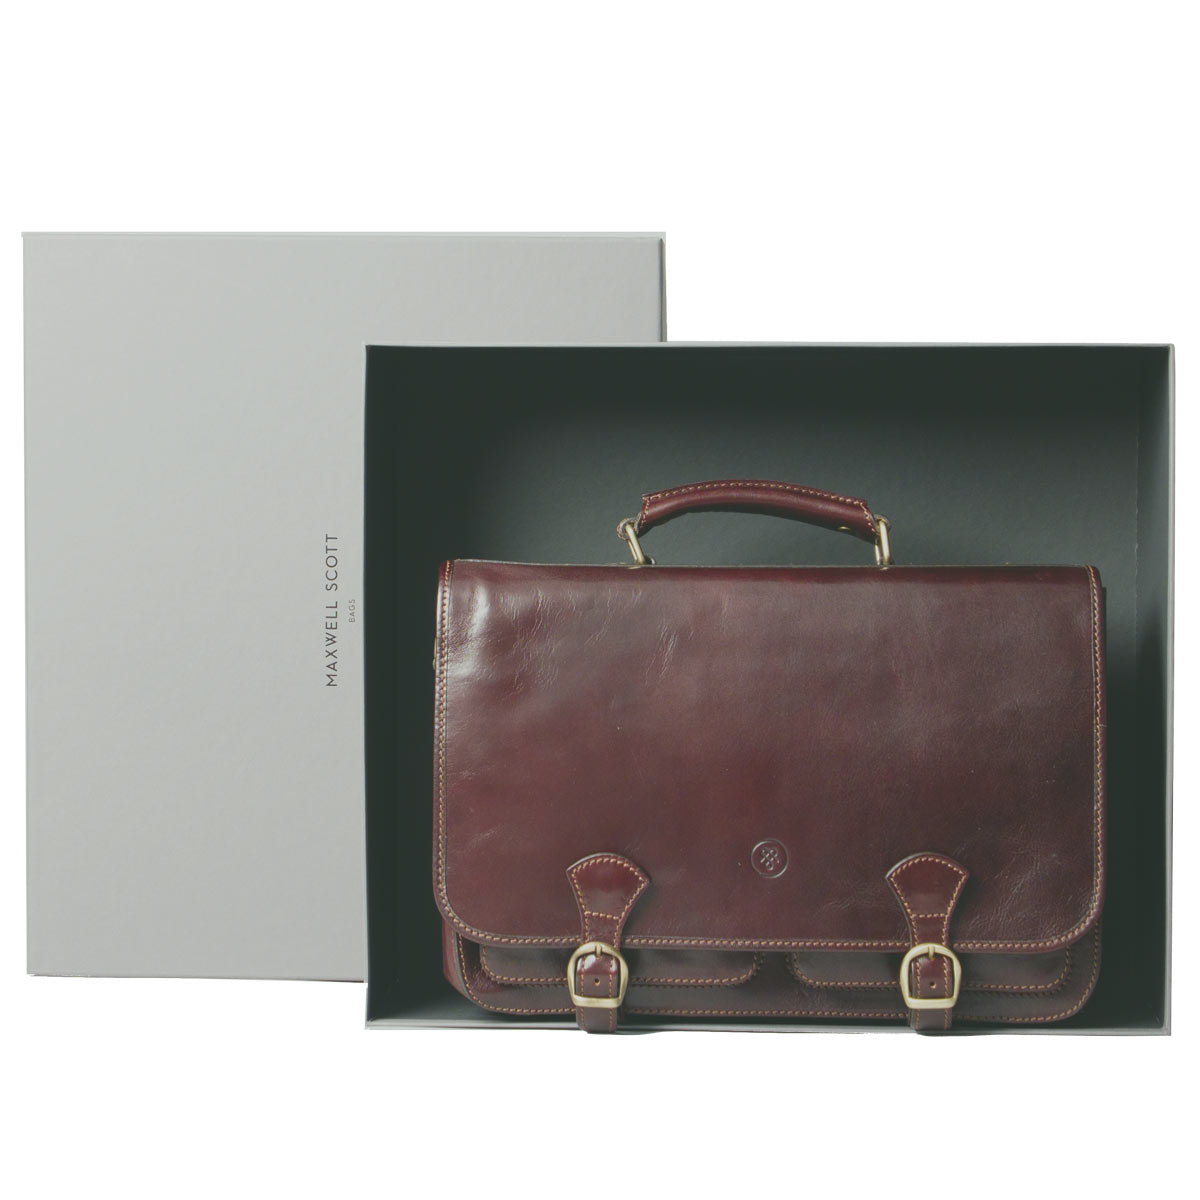 Image 7 of the 'Jesolo Tre' Dark Chocolate Veg-Tanned Leather Satchel